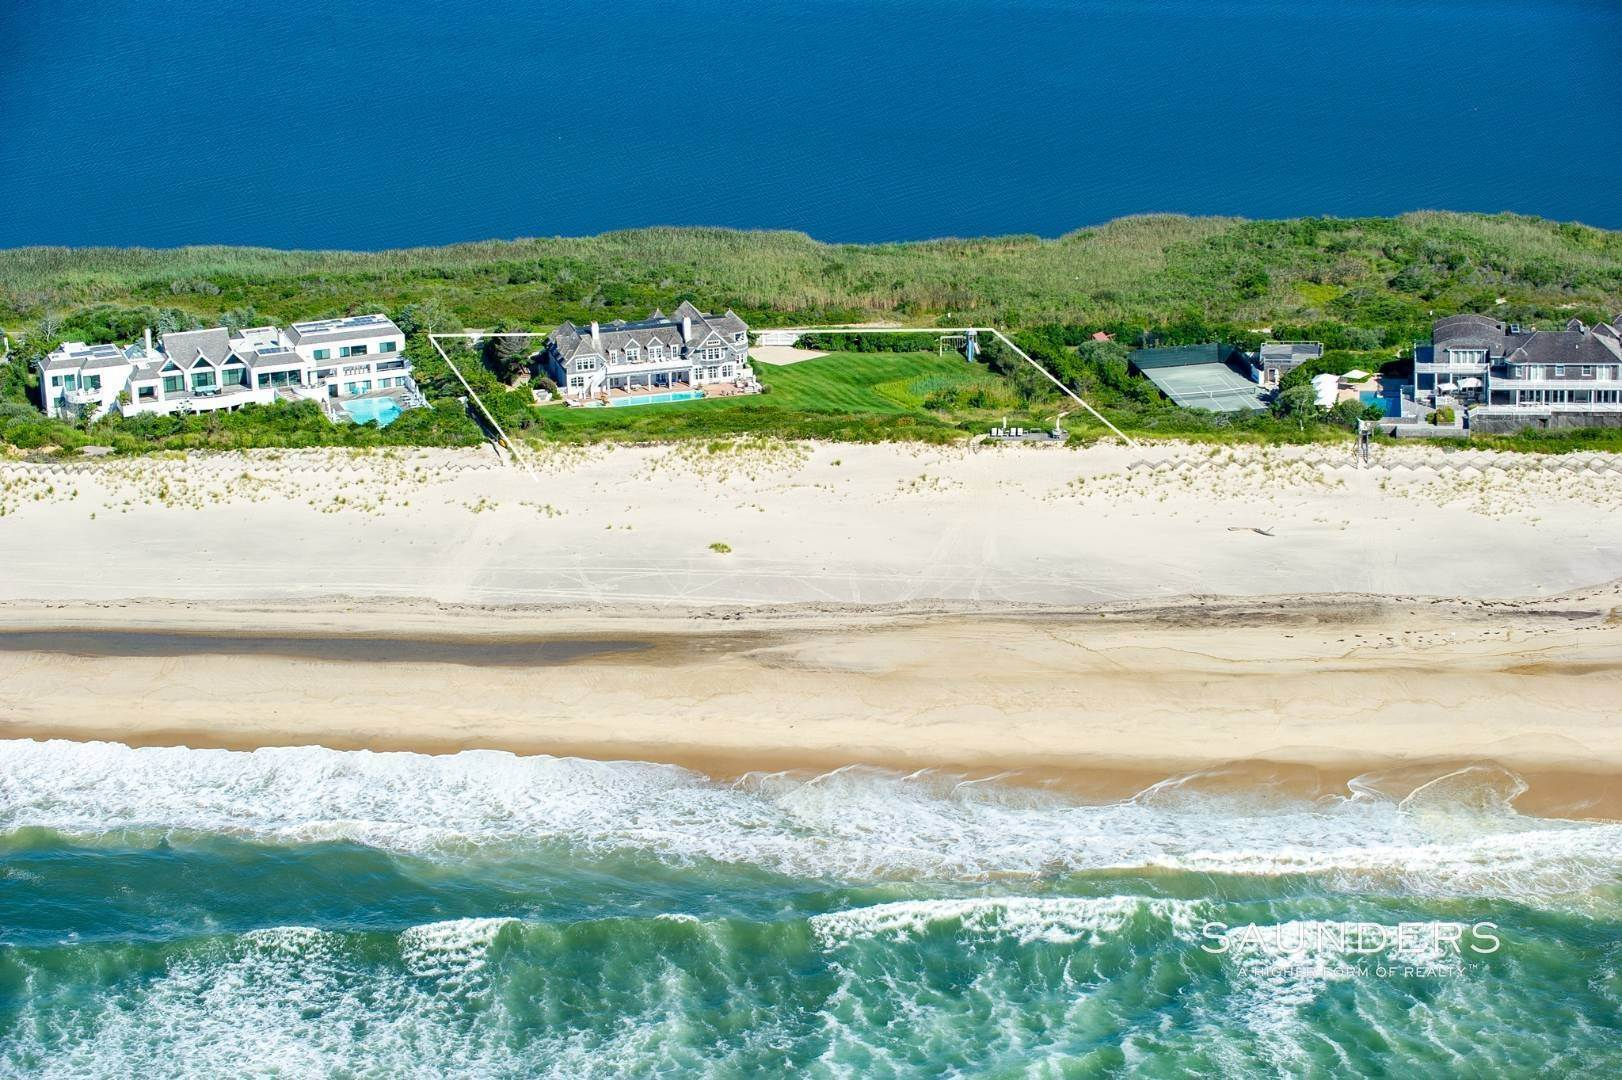 Single Family Homes at Bridgehampton Oceanfront Beach Access And Bay Views Bridgehampton, Southampton Town, NY 11932